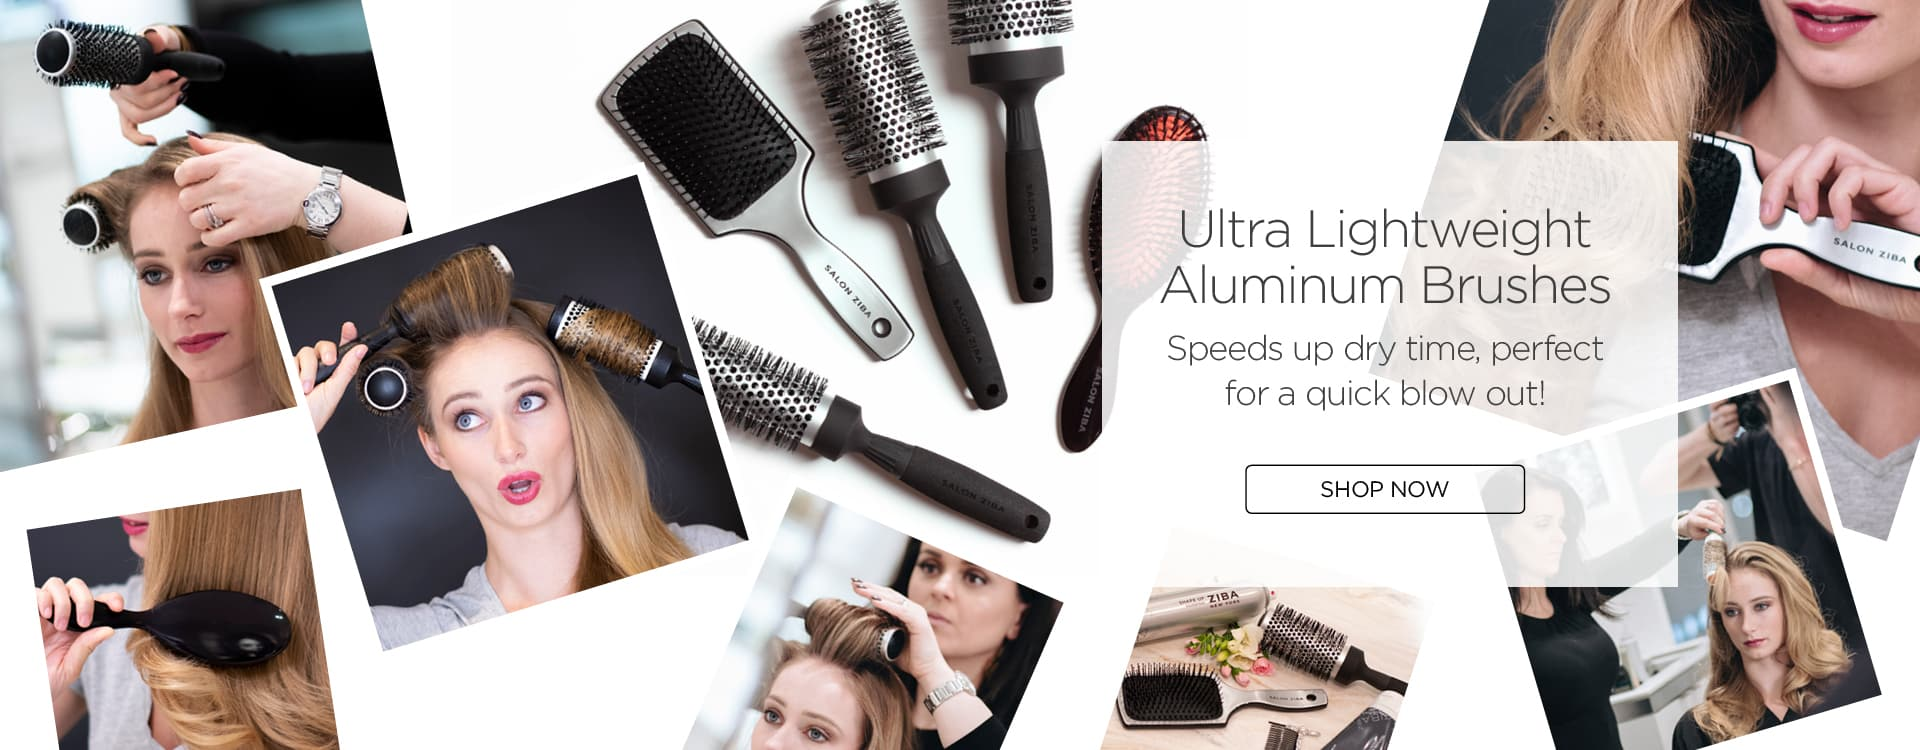 Desktop sized promotional image of hairbrushes with women combing their hair and a shop now button